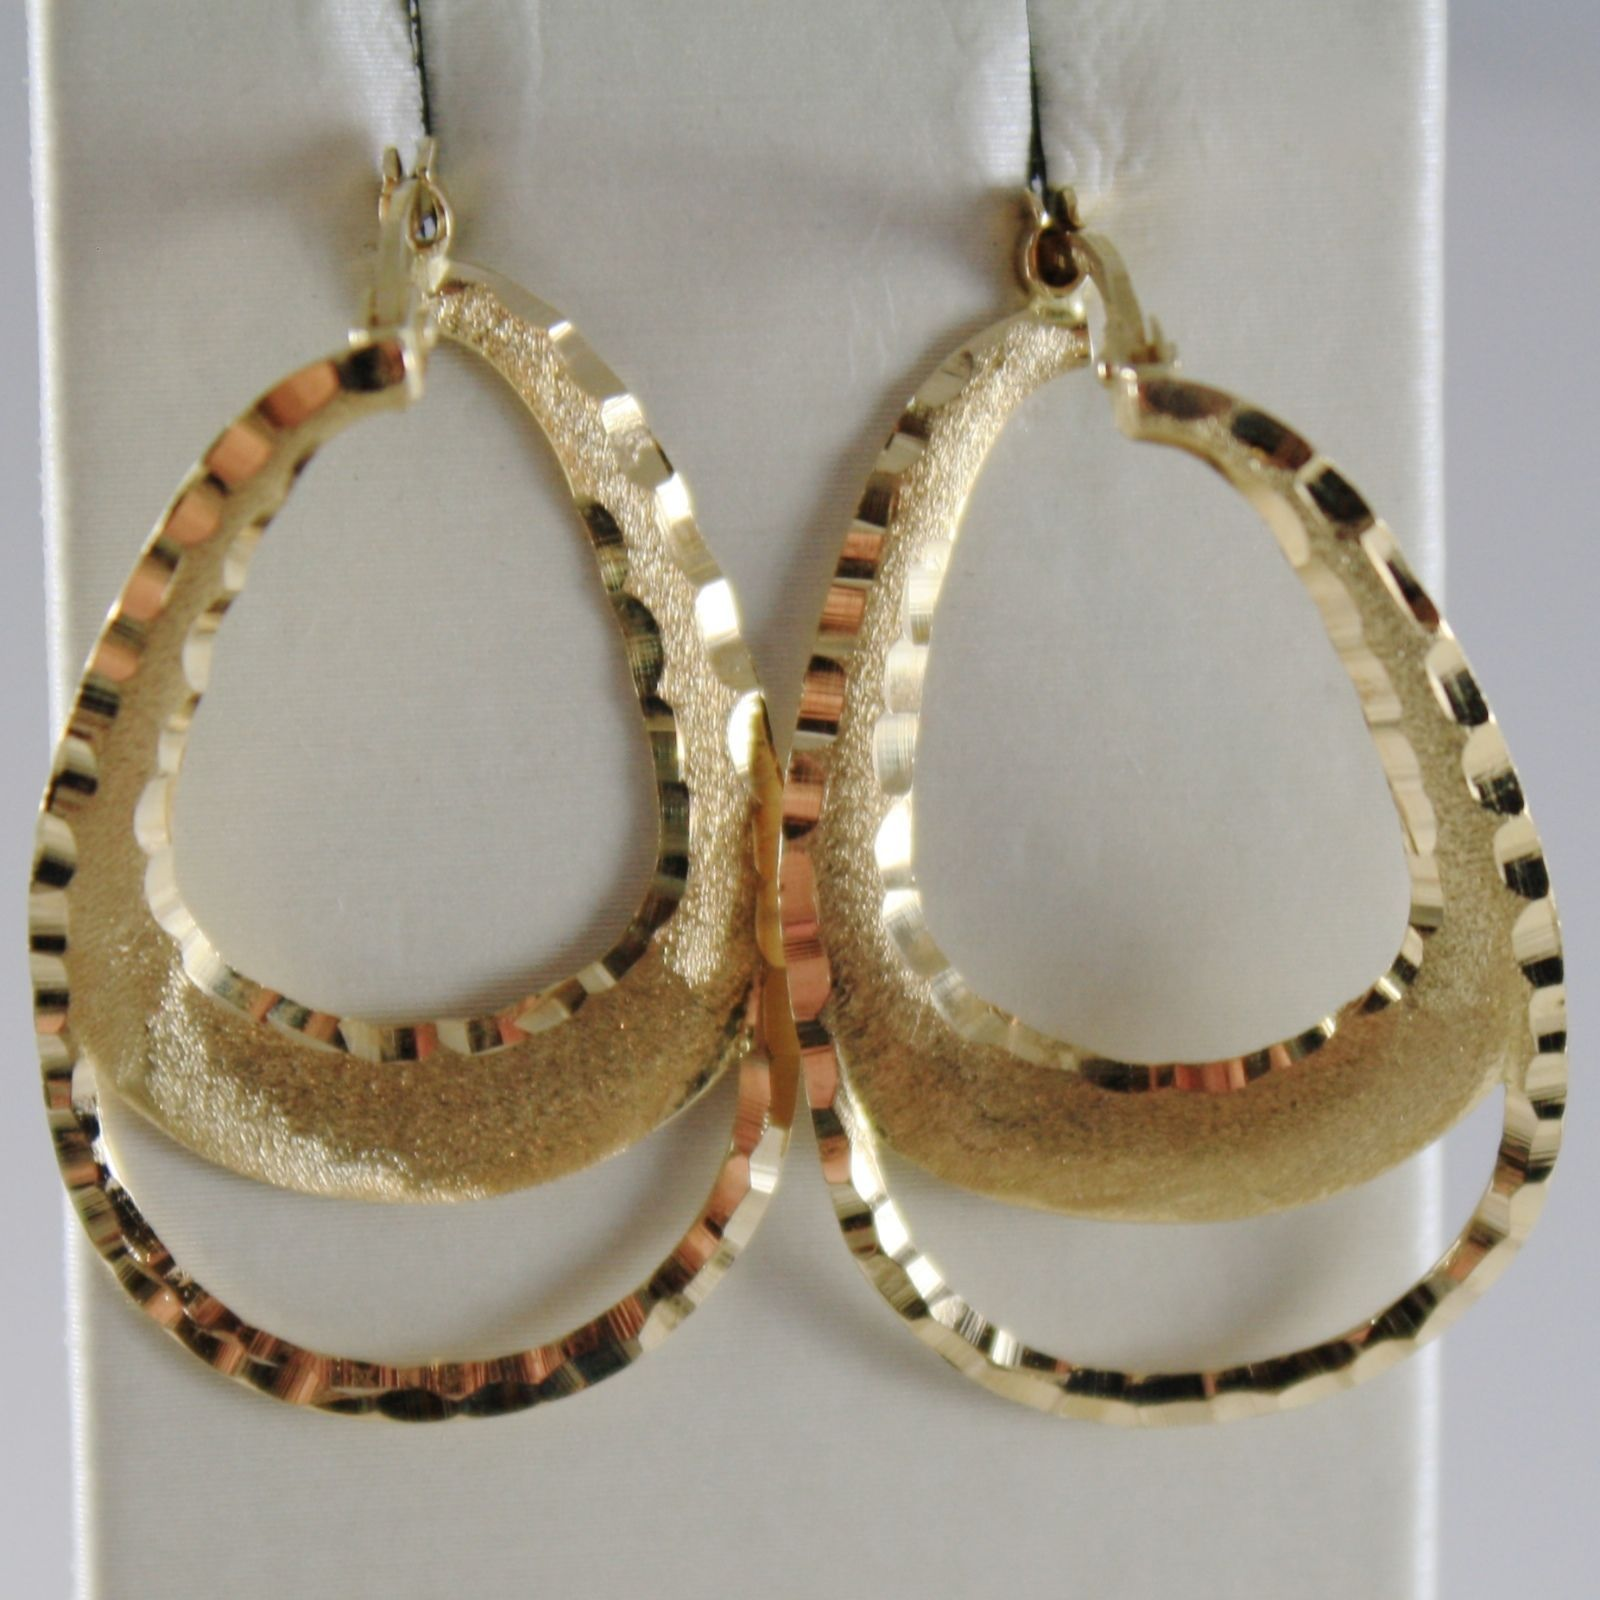 18K YELLOW GOLD EARRINGS PENDANT WORKED & SATIN DROP 30 MM LENGHT MADE IN ITALY